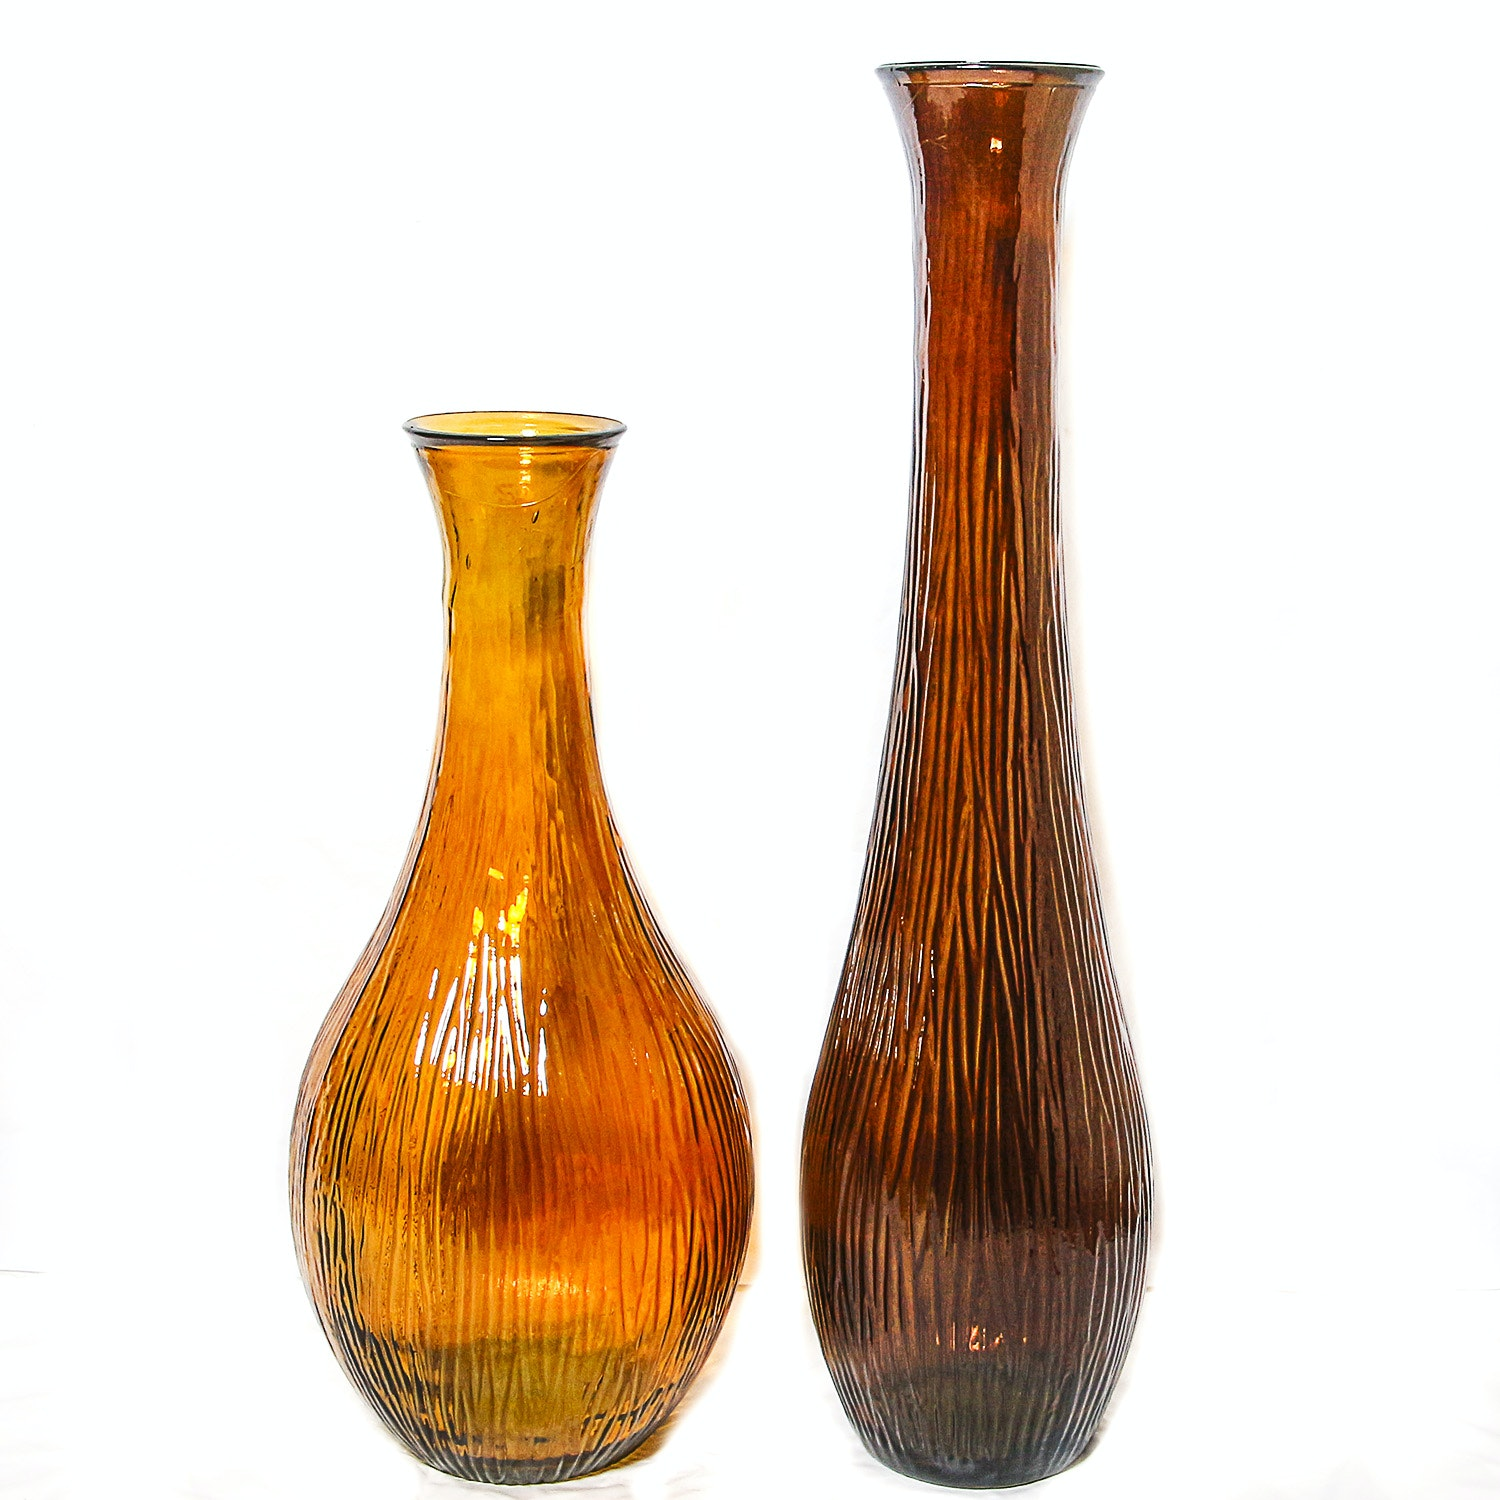 Pair of Oversize Decorative Glass Vases